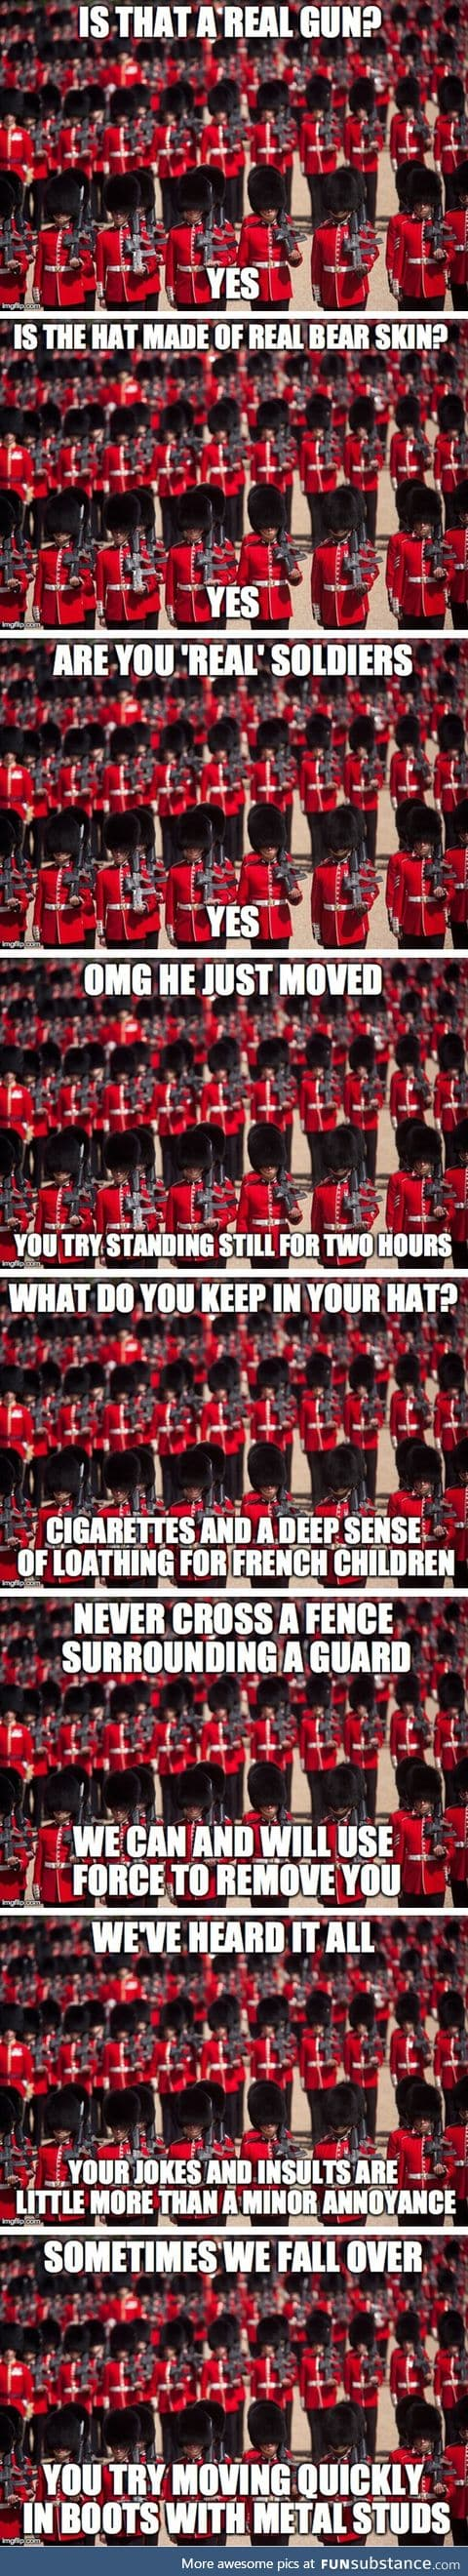 English guards with funny hats